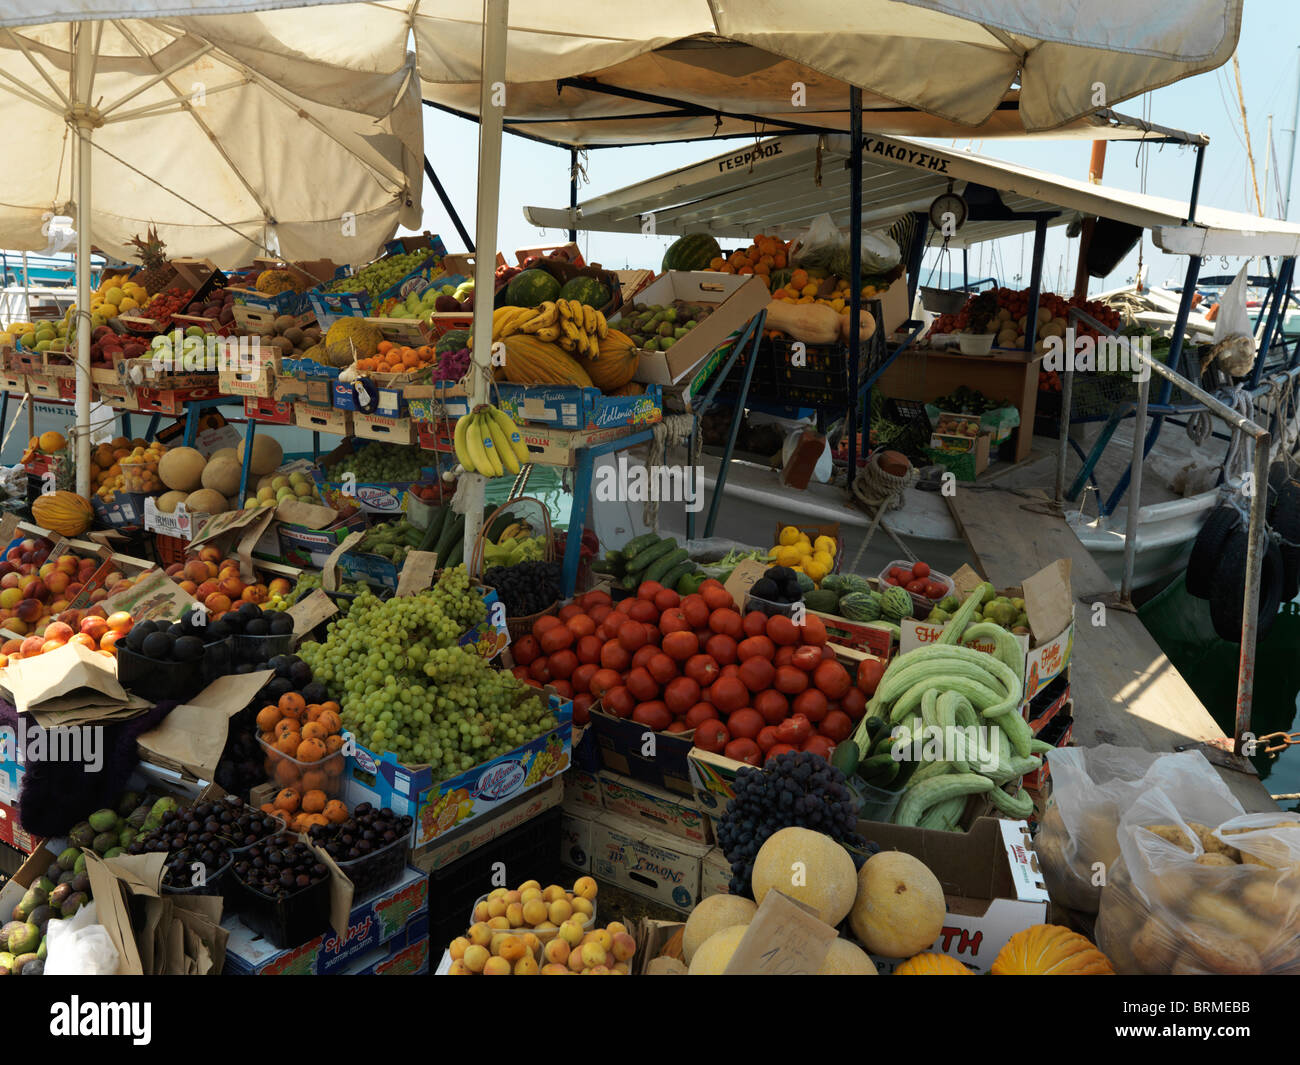 Aegina Greece Argo-Saronic Islands Fruit And Vegetables Being Sold From A Boat - Stock Image